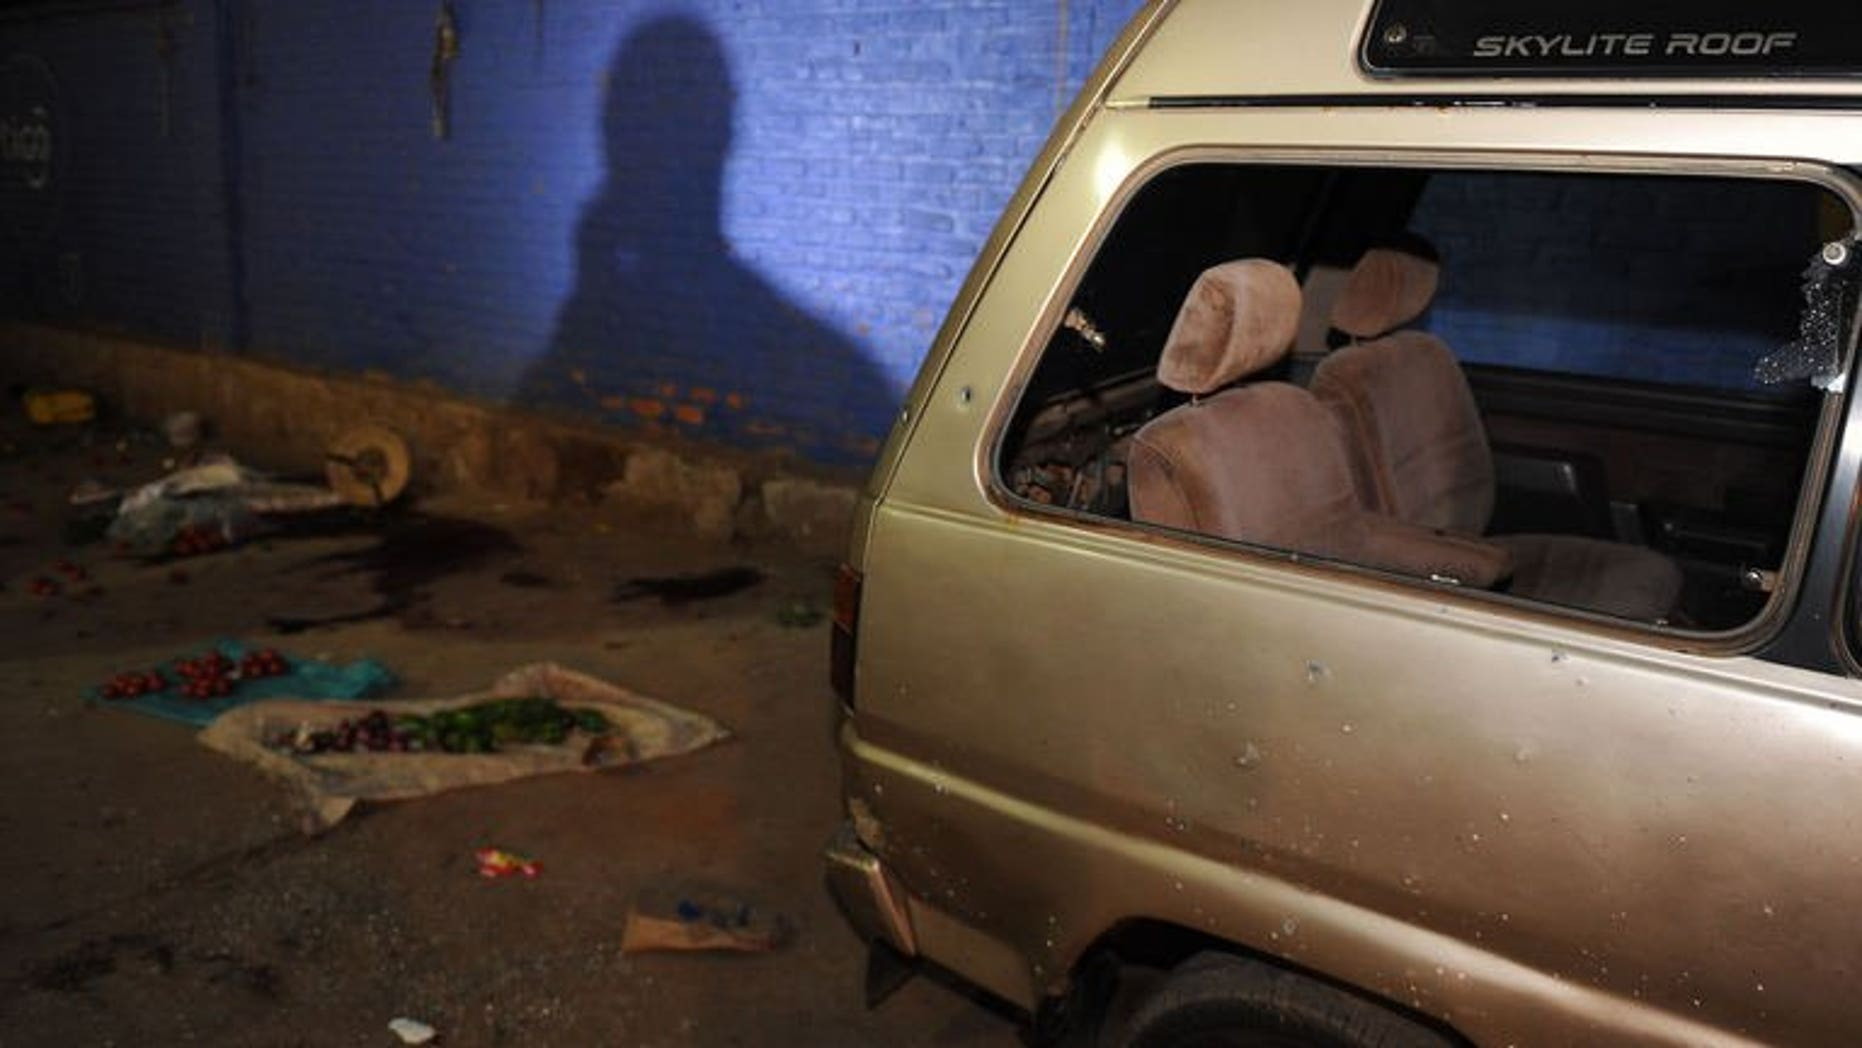 A damaged vehicle at the scene of a grenade attack in Kigali, Rwanda on September 13. One person was killed in the attack.